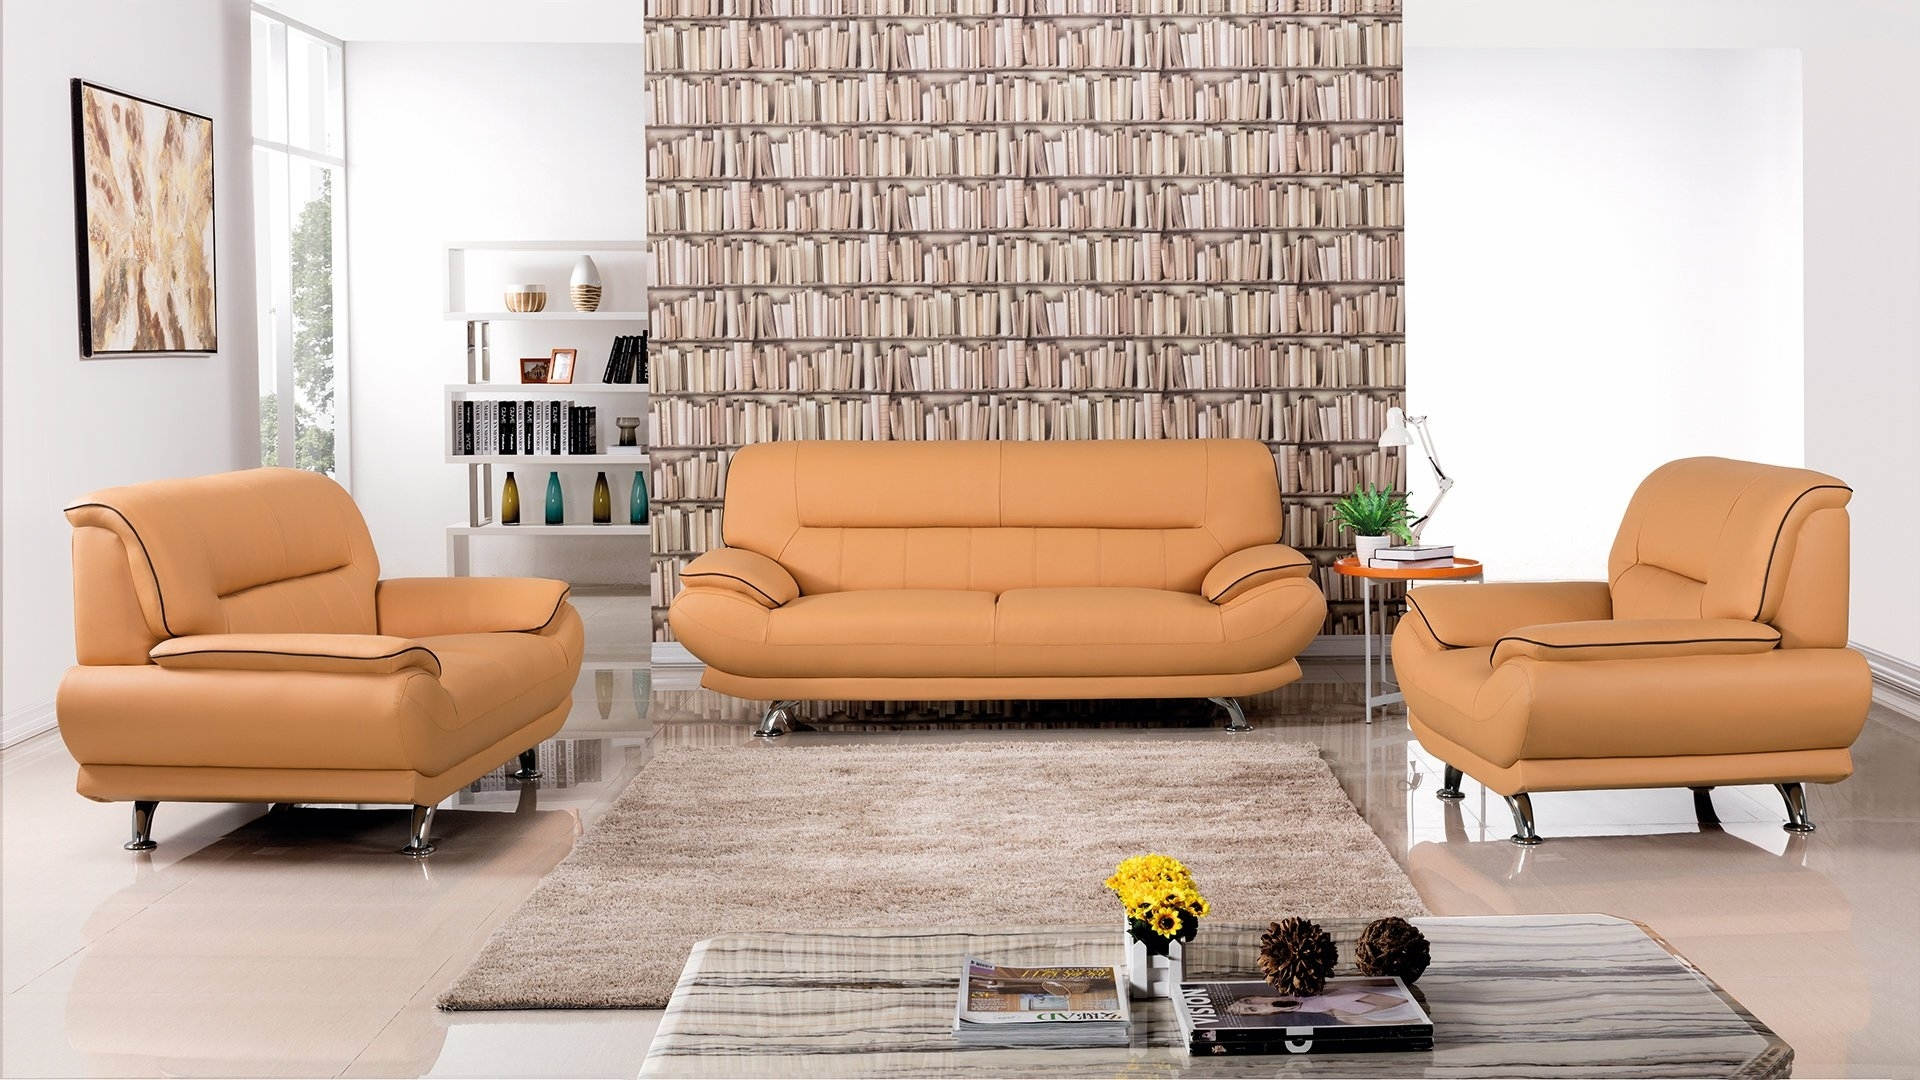 Natural 25 Wayfair Reclining Sofas Original | Russiandesignshow Regarding Burton Leather 3 Piece Sectionals With Ottoman (Image 16 of 25)